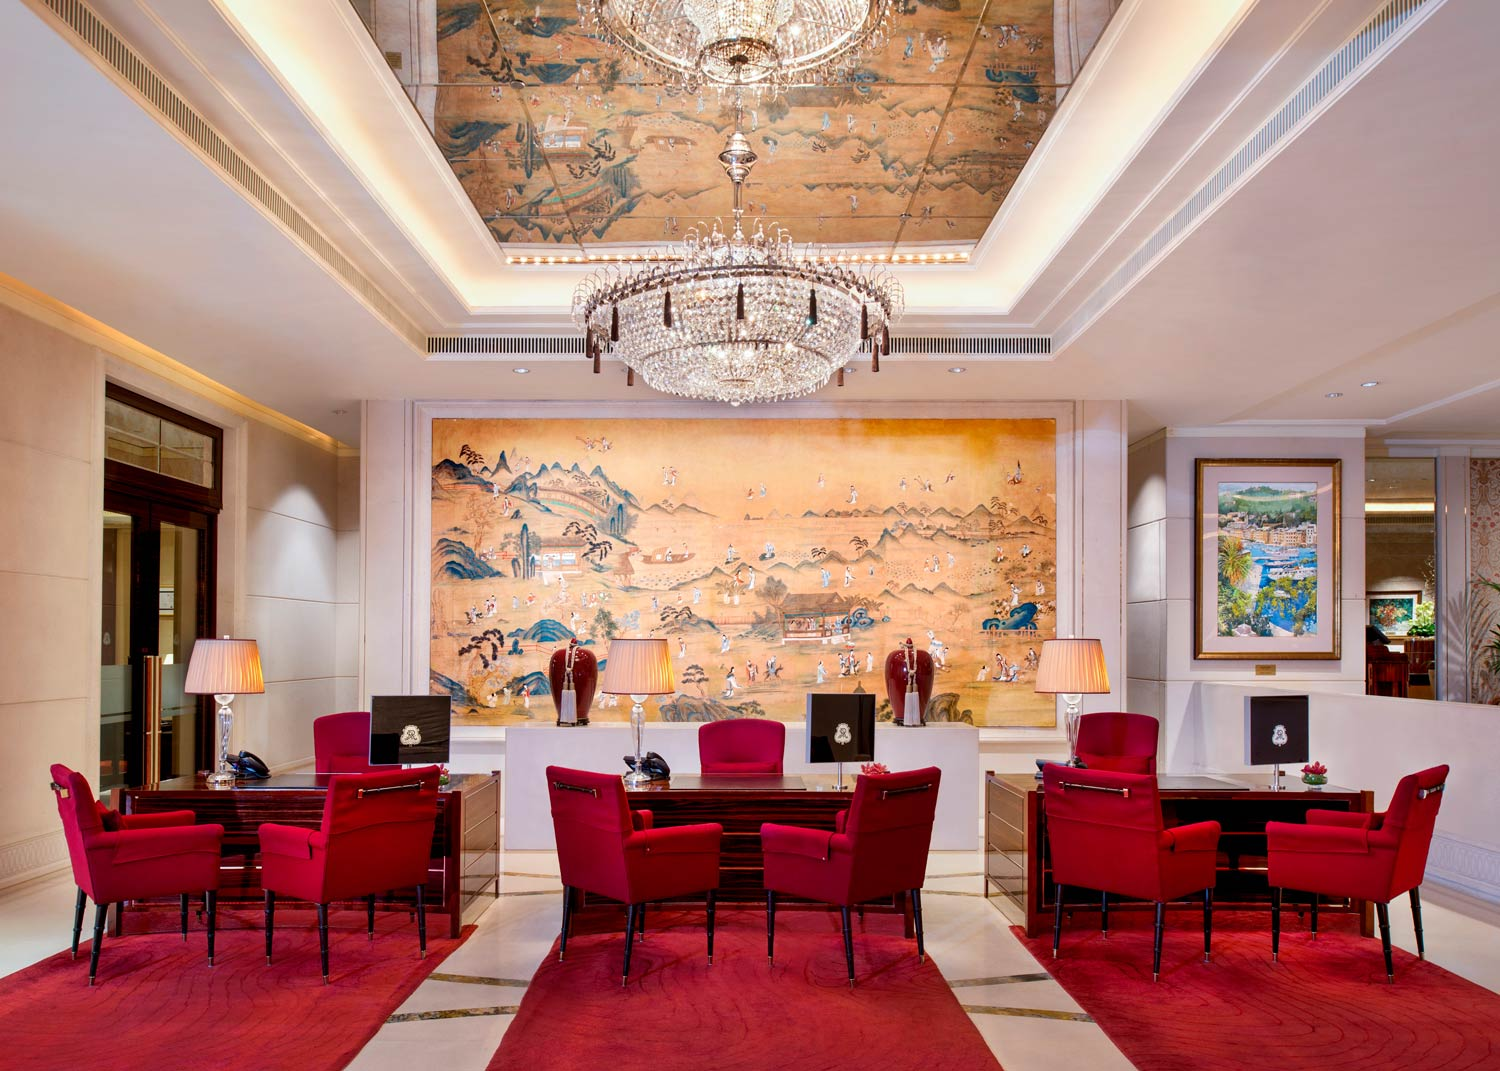 Refinement and influence resides at the st regis hotel for The st regis